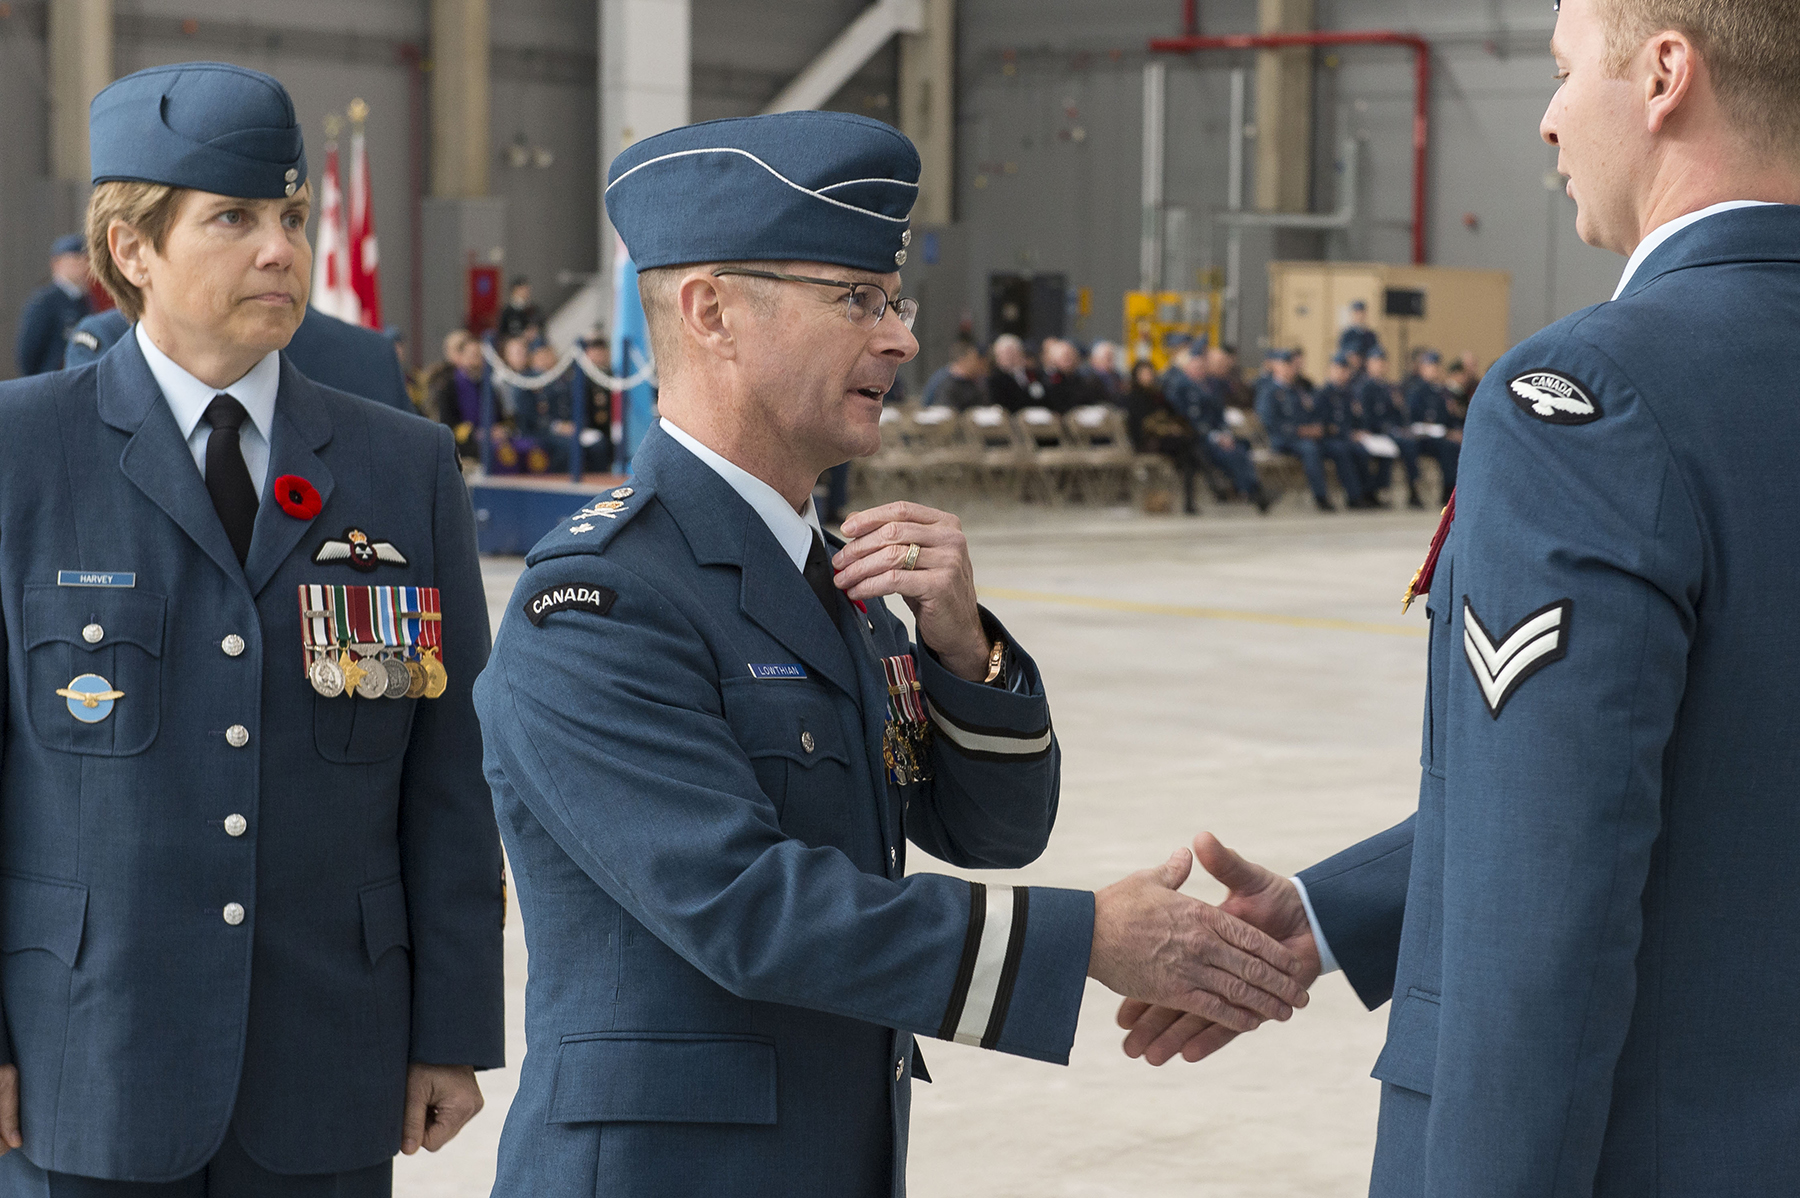 Brigadier-General David Lowthian greets Corporal Luke Summerfield during the parade held at 8 Wing Trenton, Ontario, on November 7, 2017, to mark the 75th anniversary of 429 Transport Squadron. PHOTO: Ordinary Seaman Paul Green, TN05-2017-0661-086